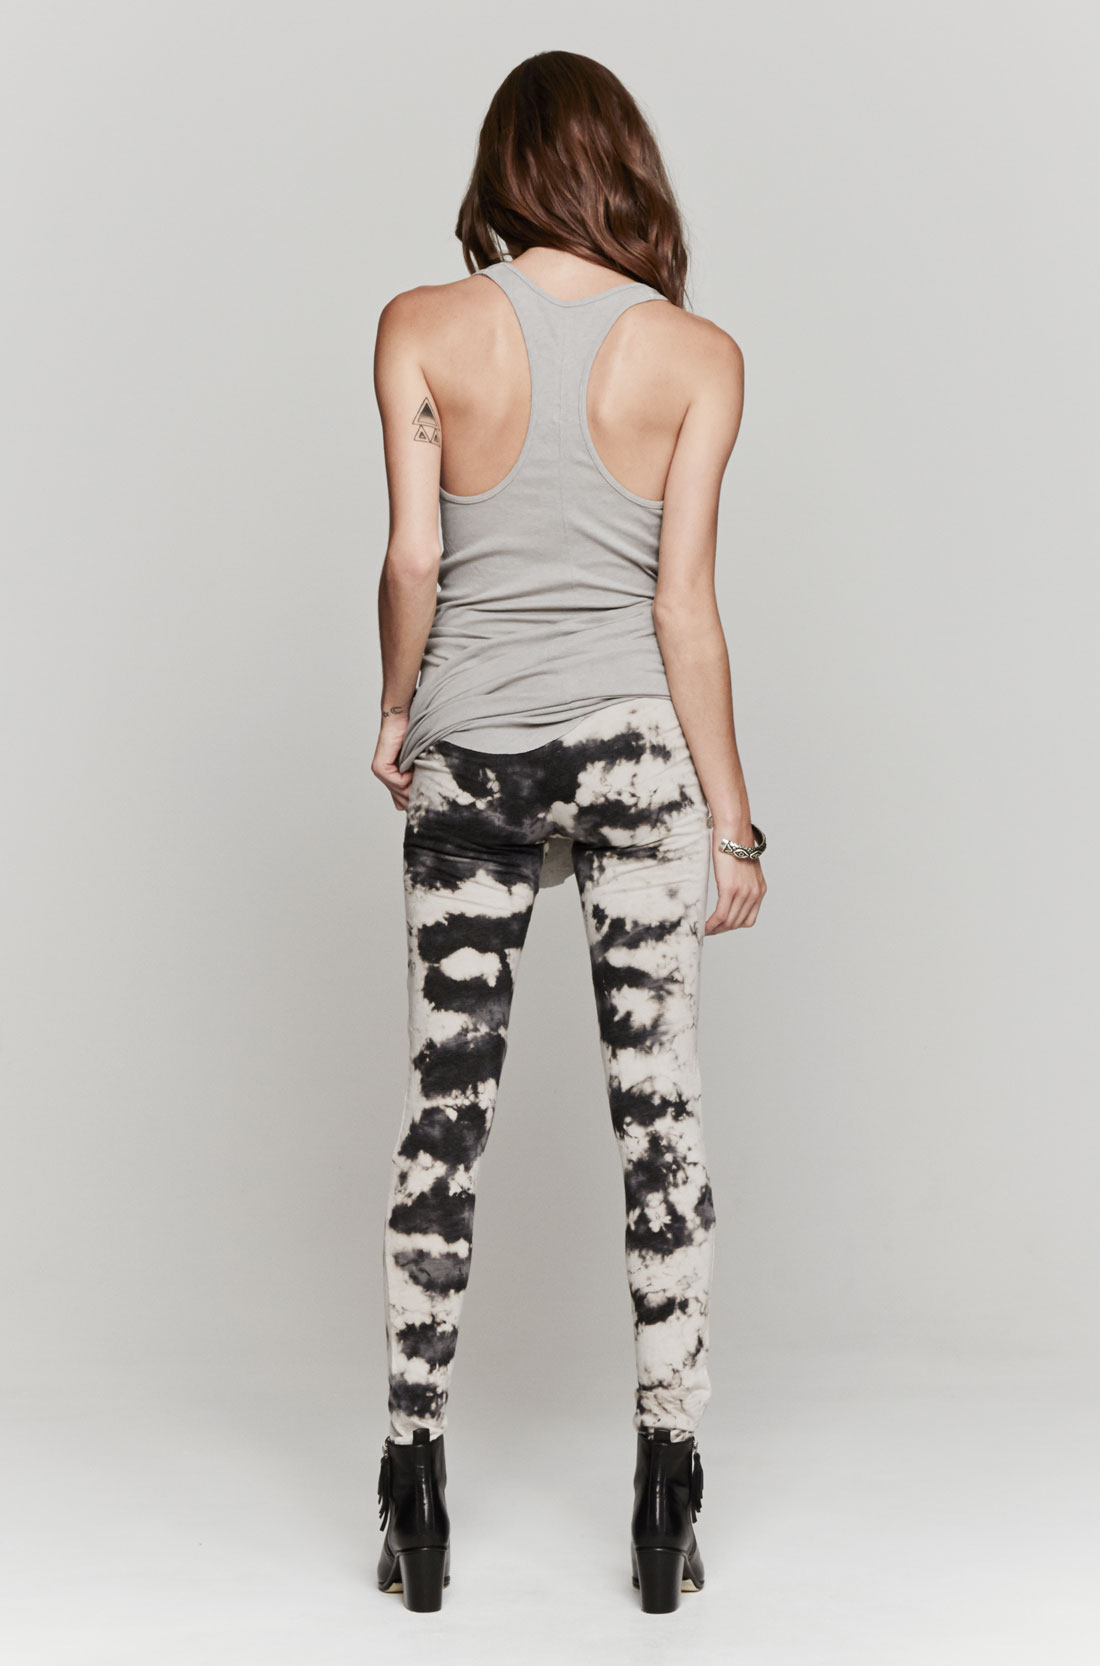 Tie Dye Leggings Uk - The Else